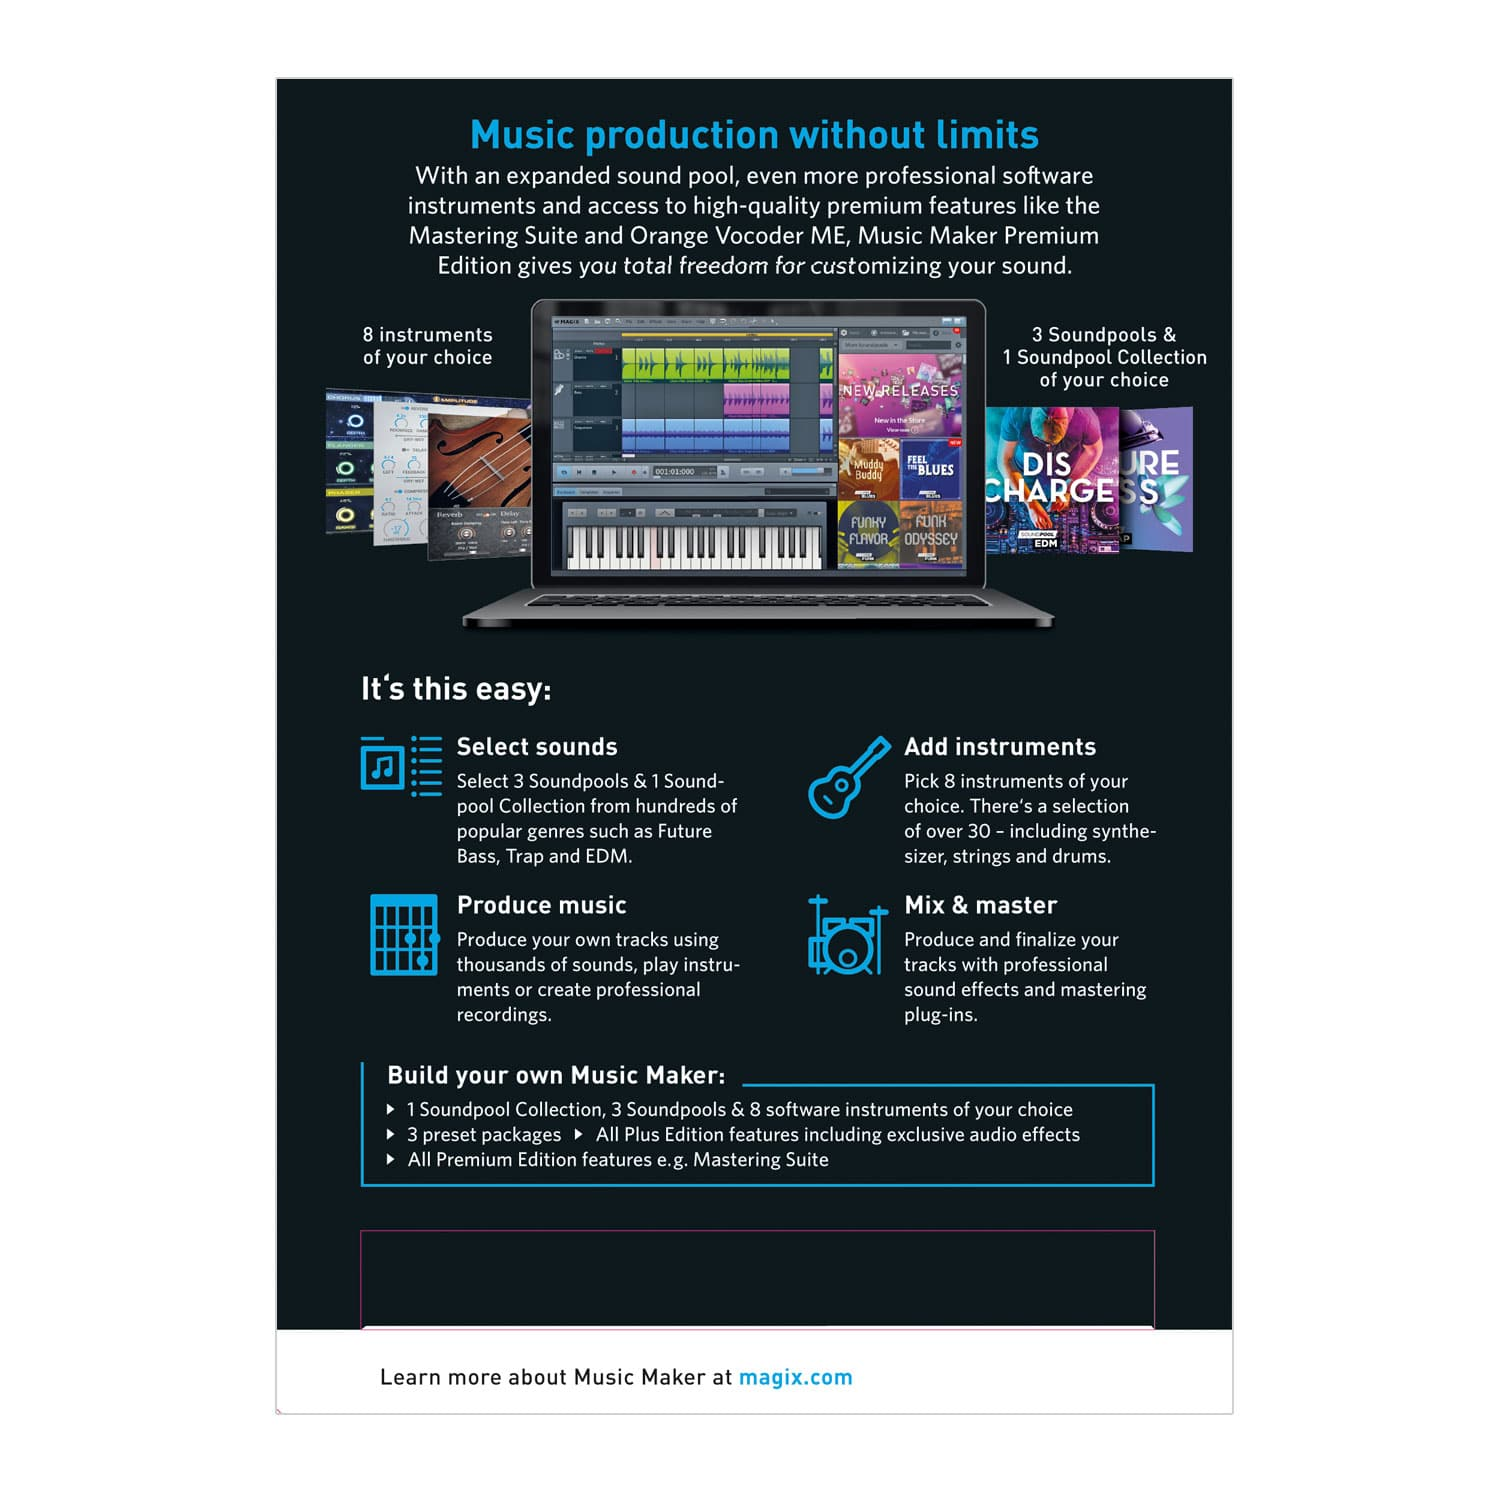 Magix Music Maker  Combine pre-made sounds and build them together to produce your own songs